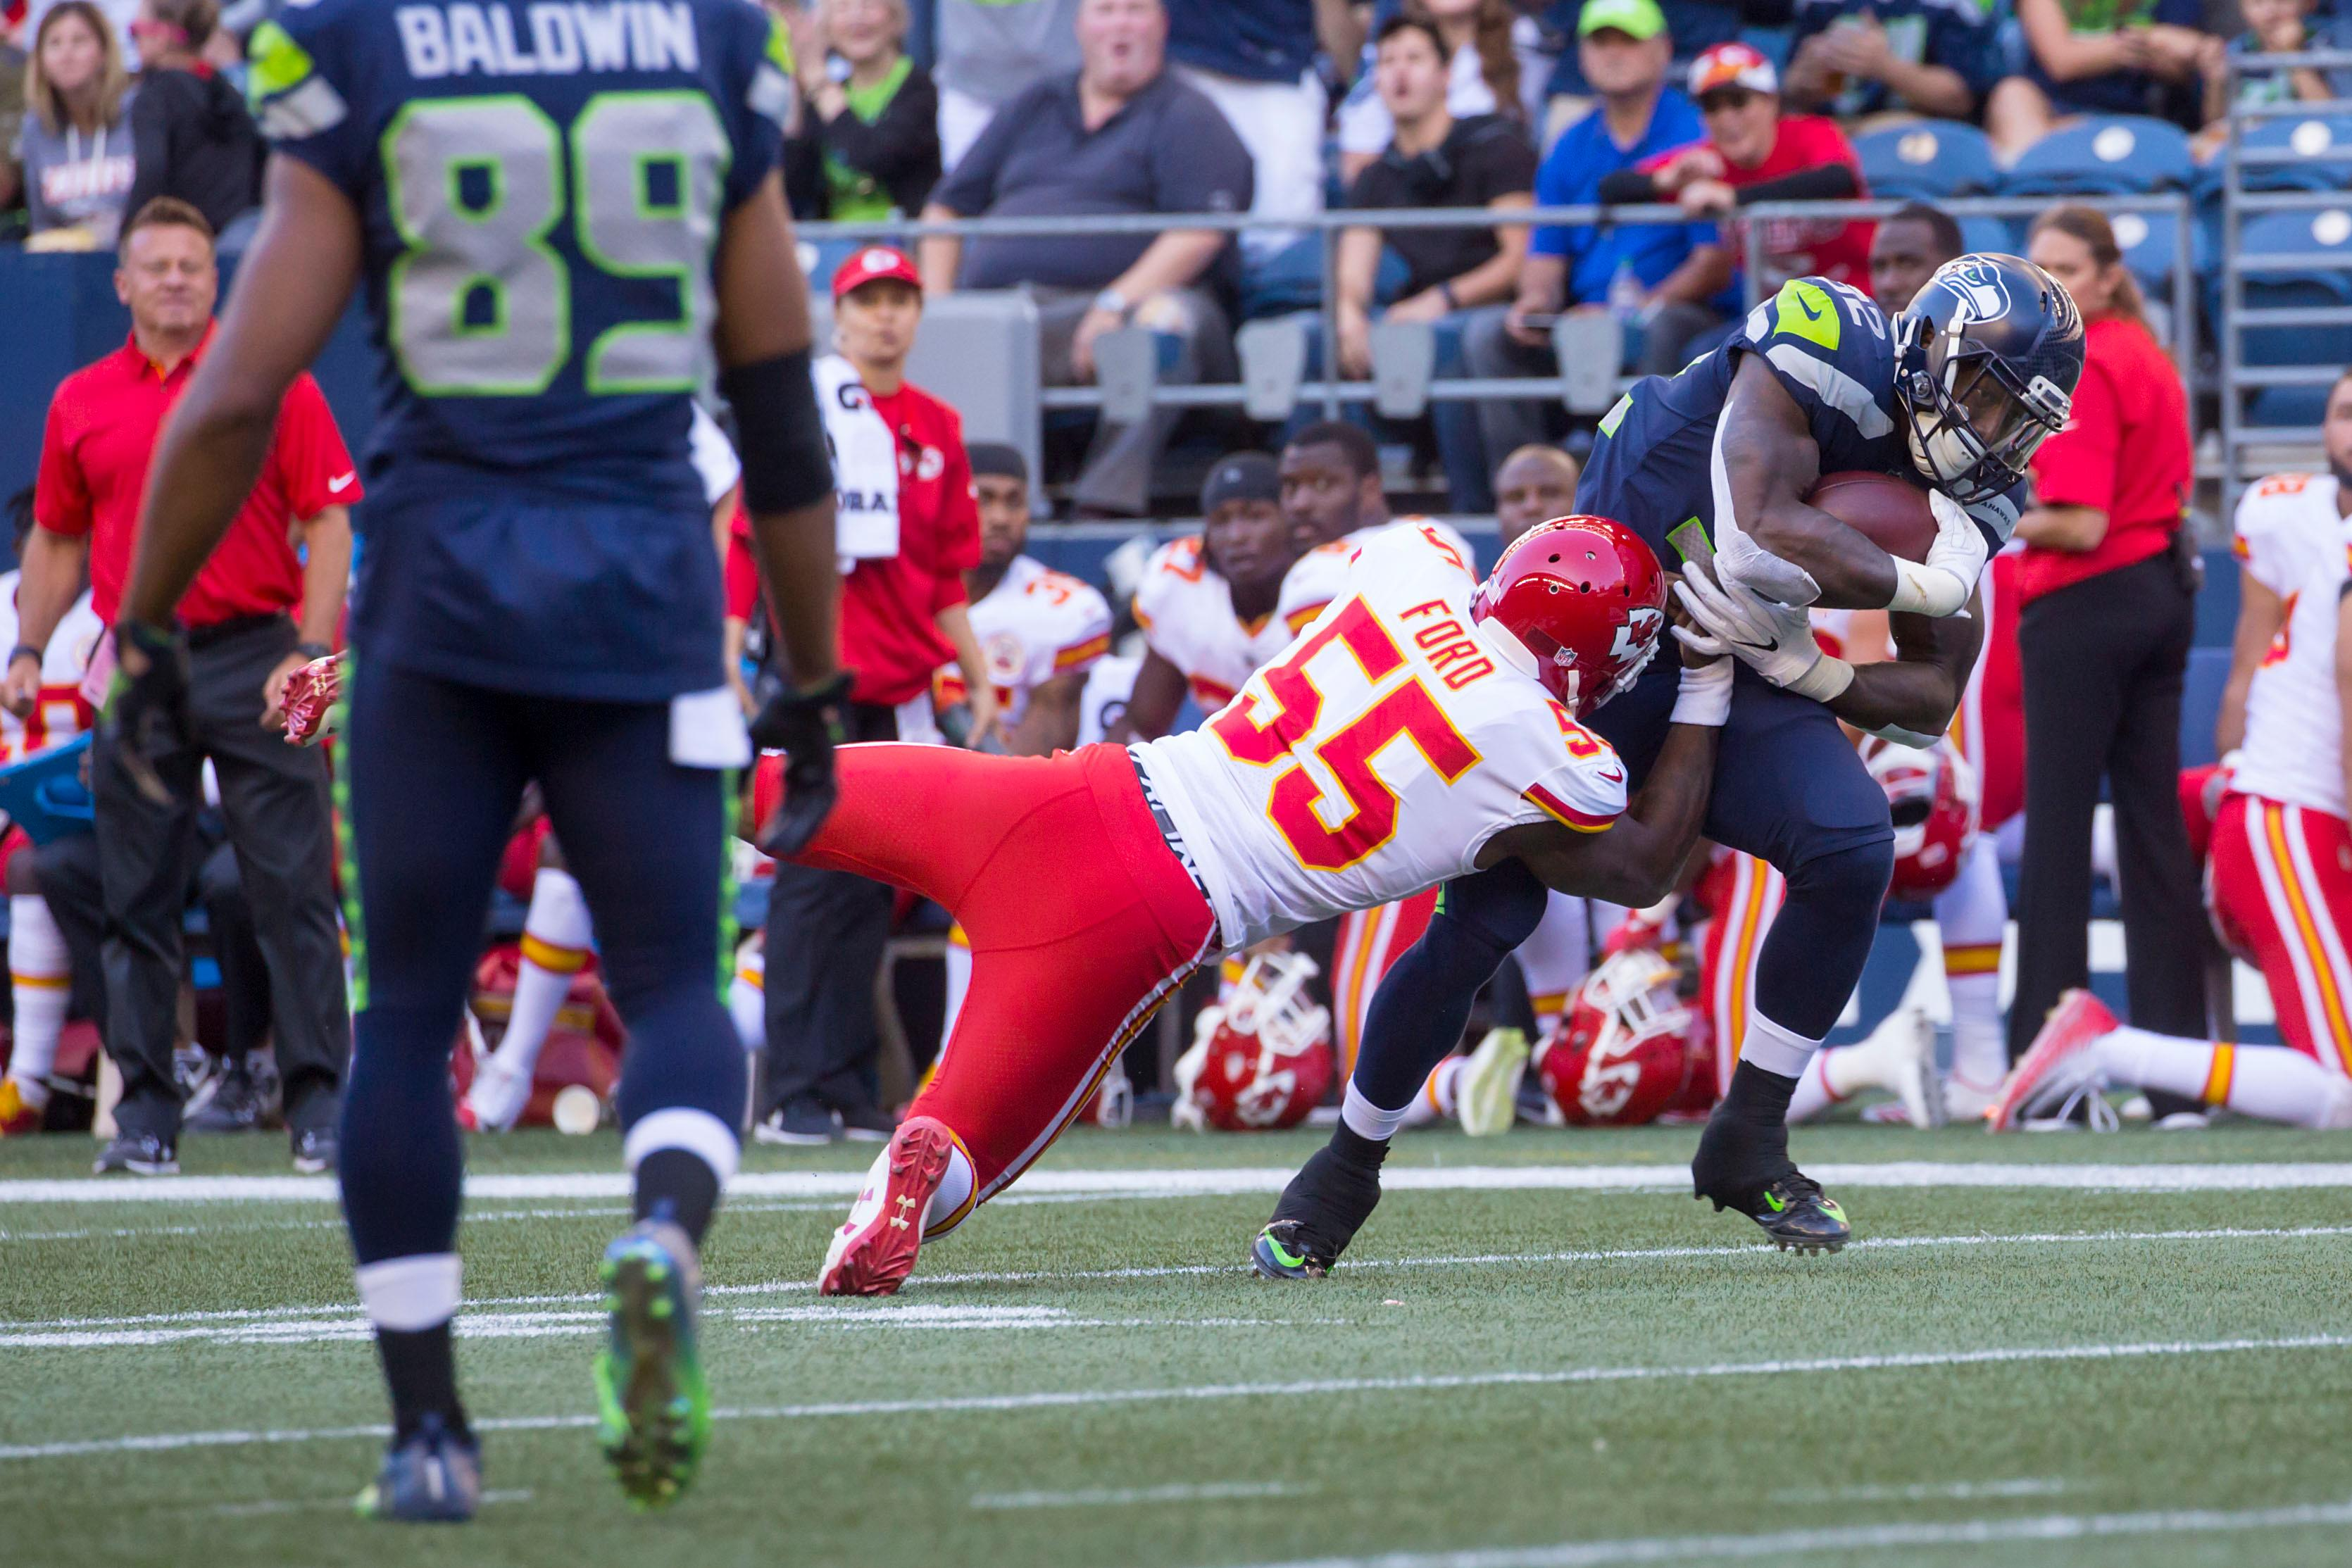 The Seahawks take on the Kansas City Chiefs on Friday, August 25, 2017 for the second pre-season game in a row at CenturyLink Field in Seattle. 12s celebrated and tailgated before the game on a beautiful summer Friday. The final score was 26-13, with the Seattle Seahawks taking the 'W'. (Image: Sy Bean / Seattle Refined)